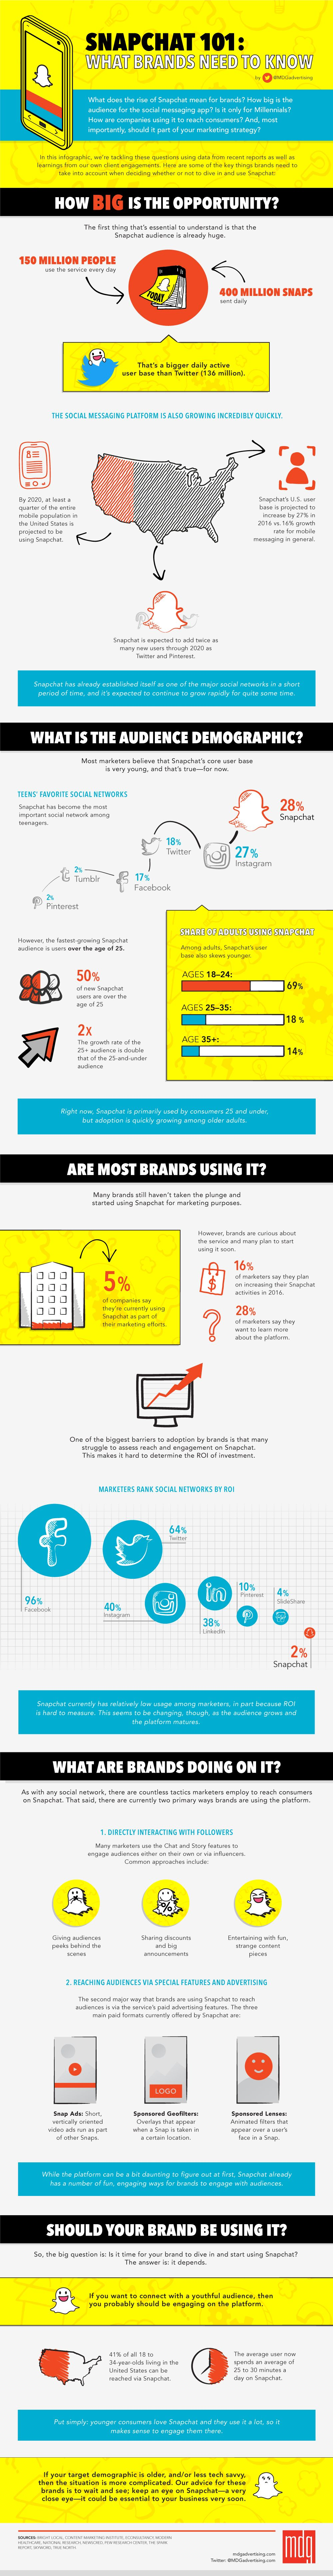 Snapchat 101: What Brands Need to Know [Infographic]